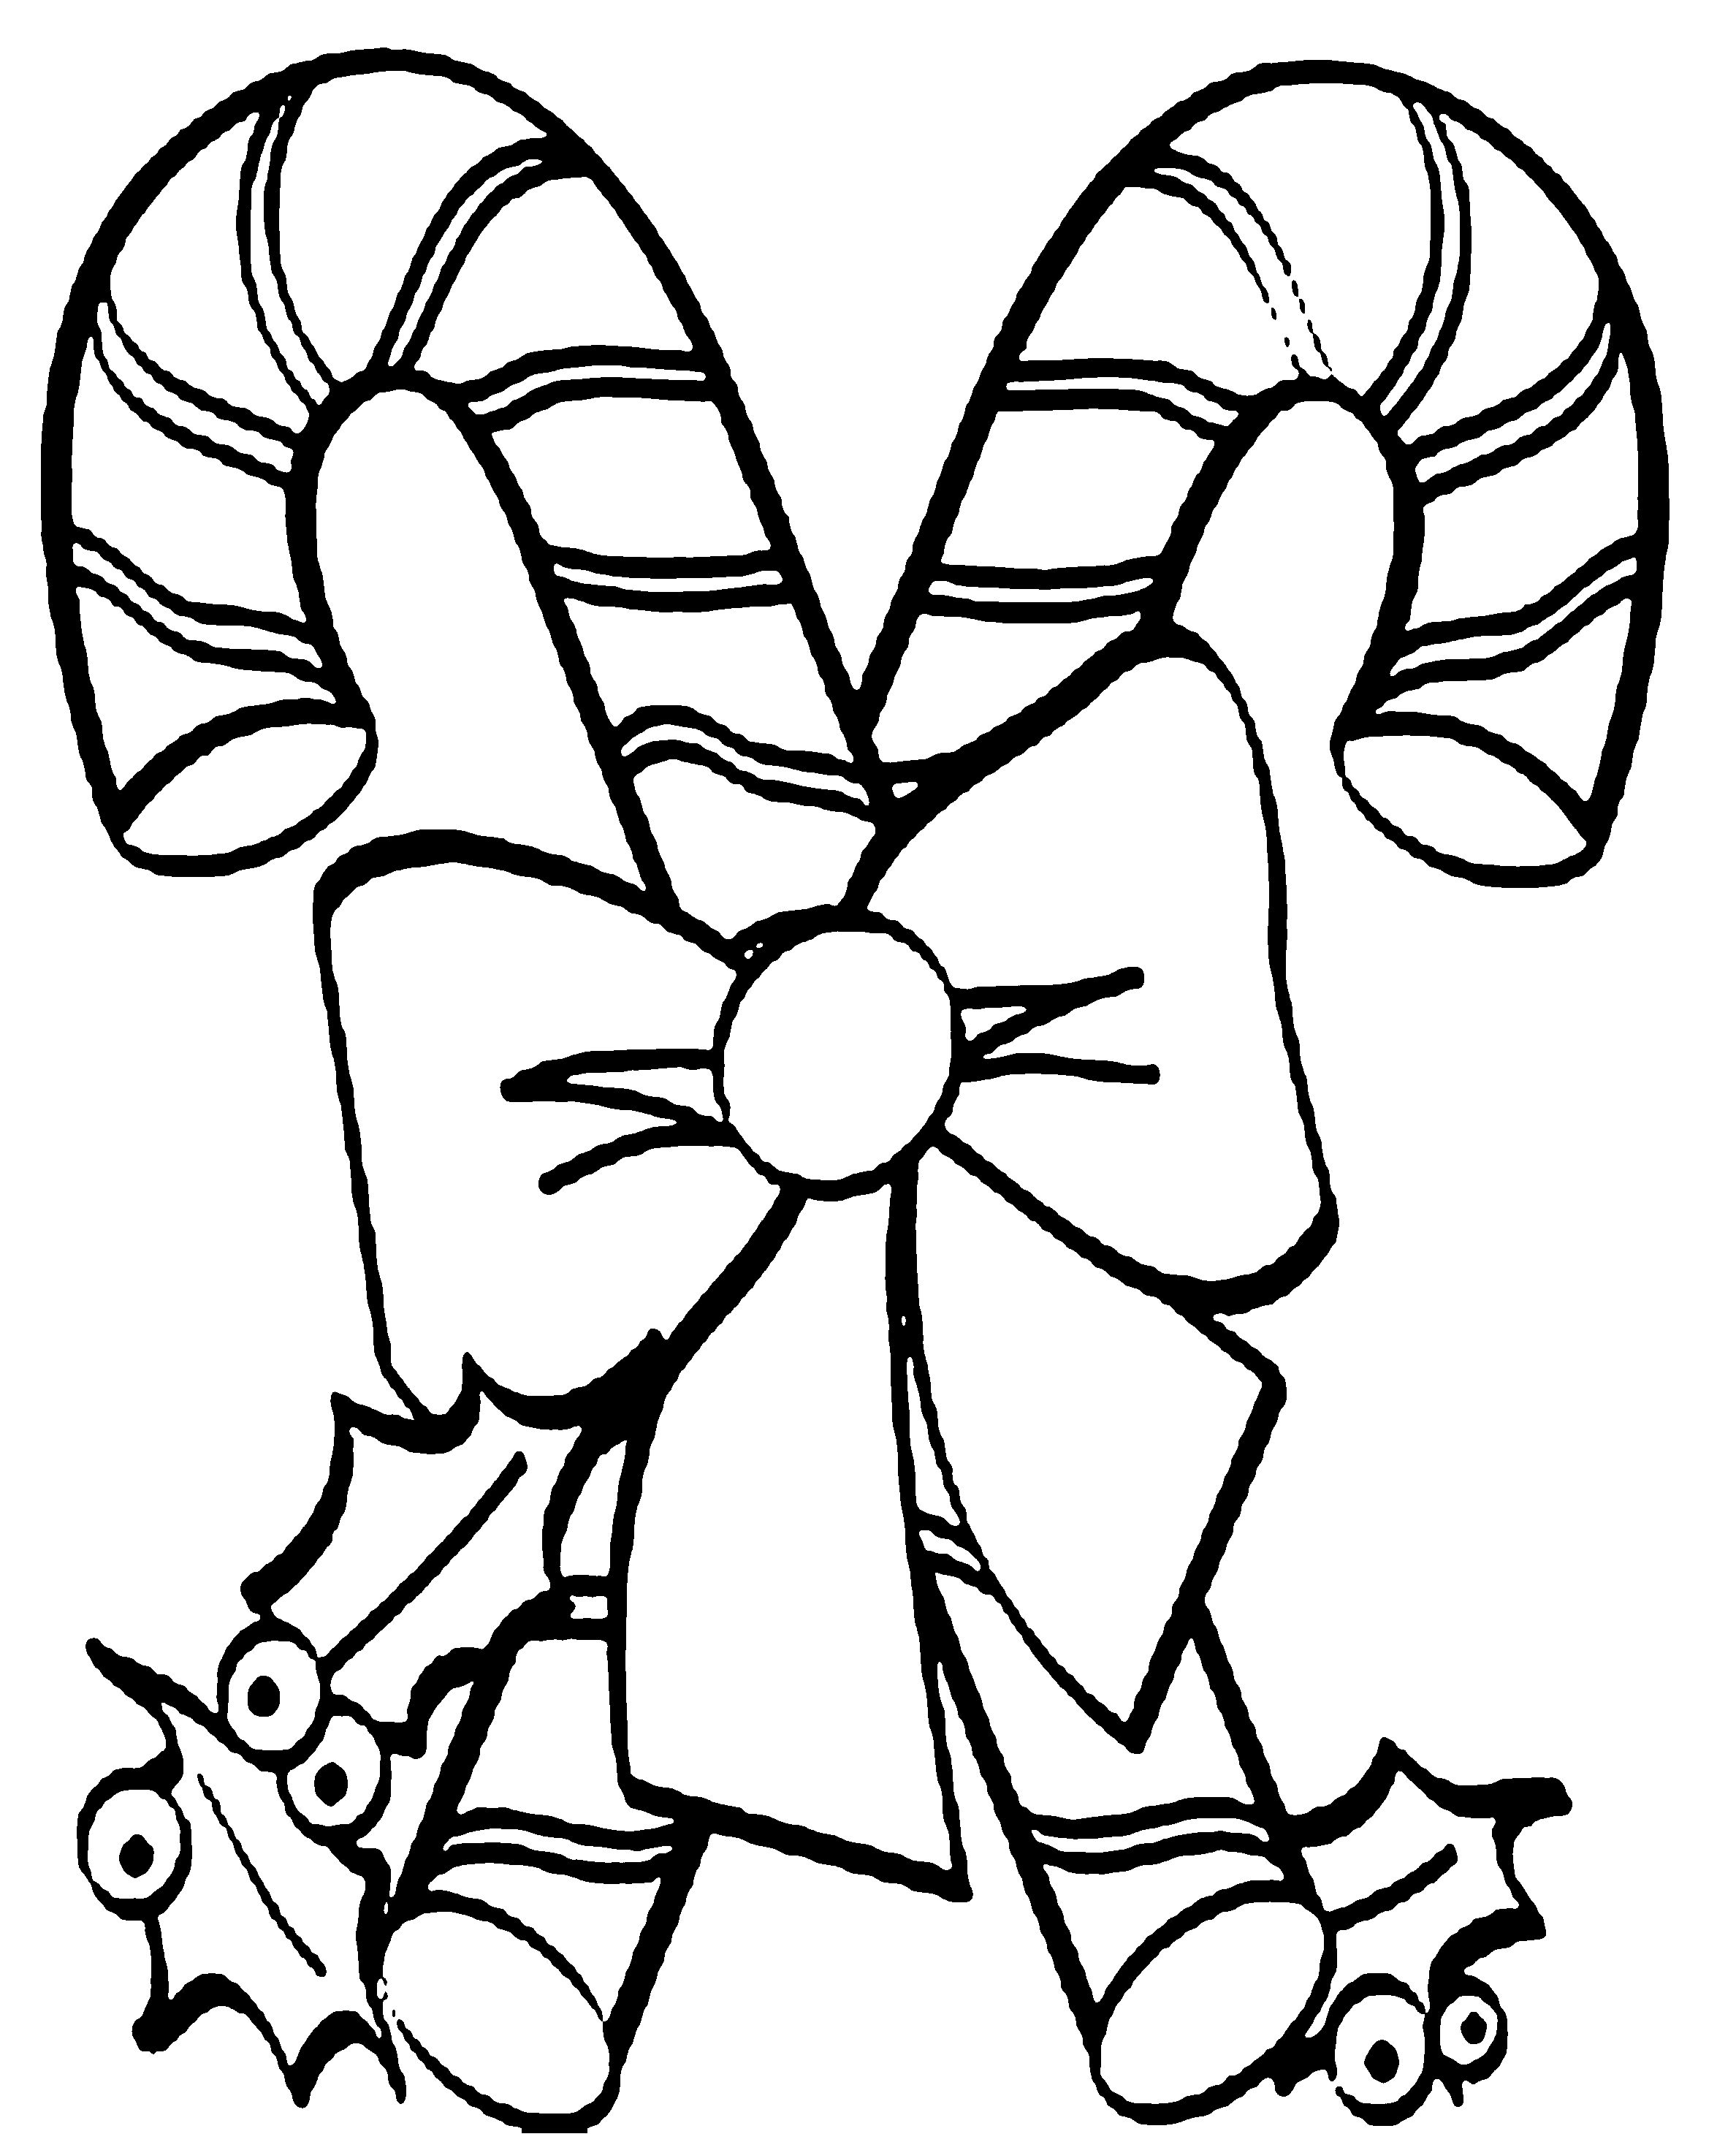 2376x2931 Christmas Candy Cane Coloring Pages With Lovely Christmas Candy